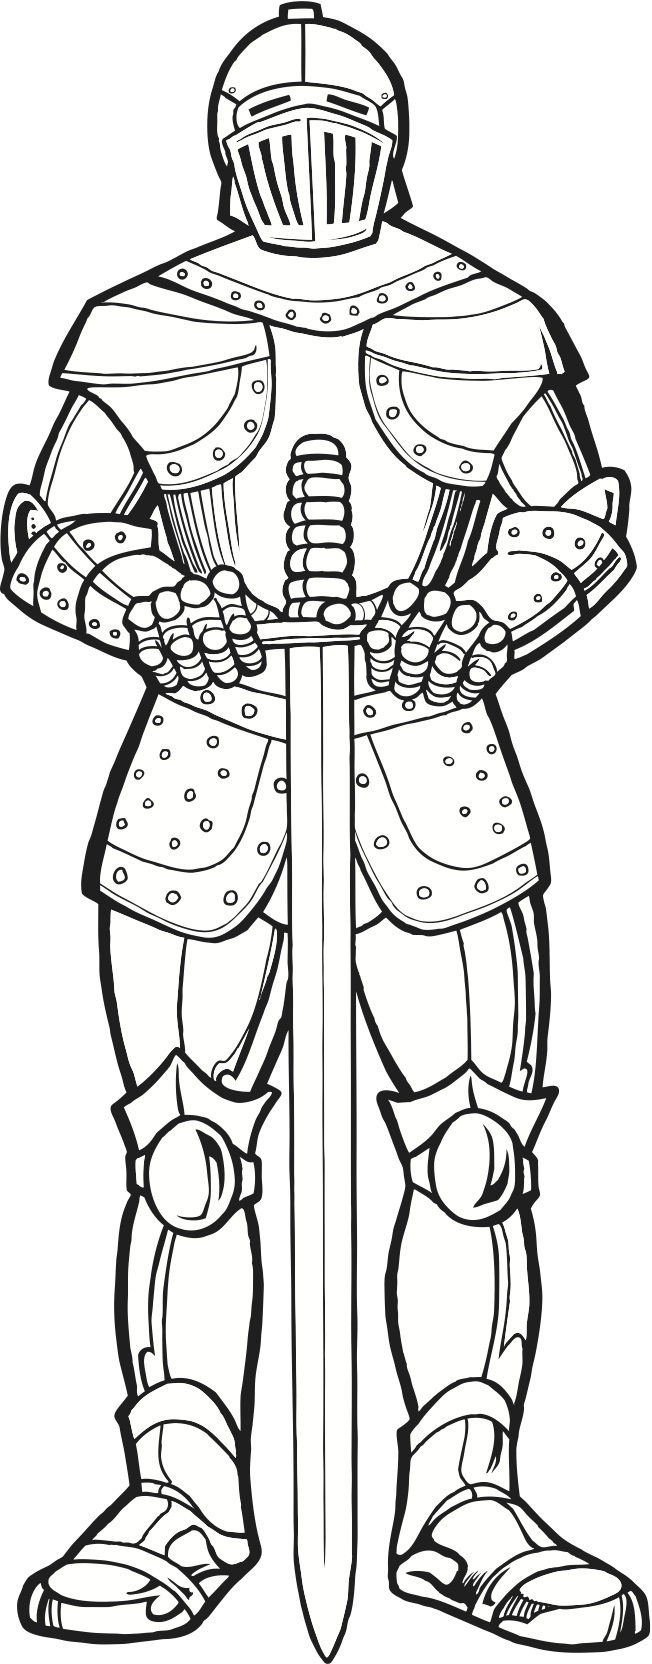 Knight in Armor (coloring page)